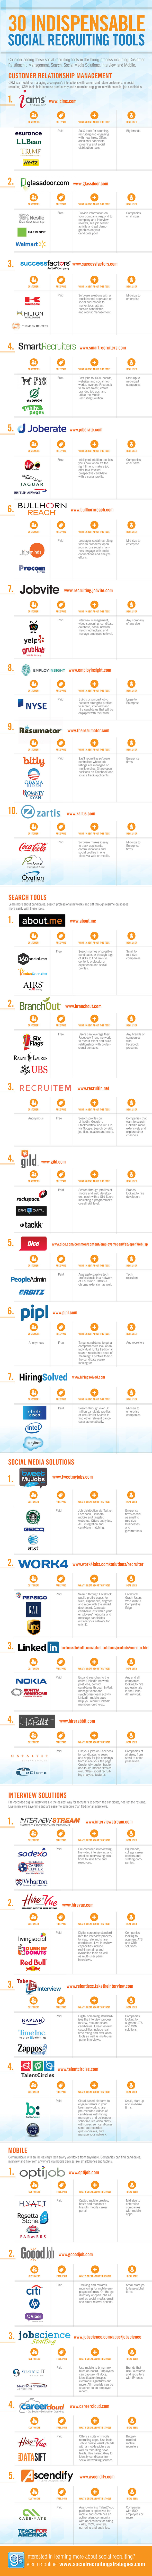 30 Must-Have Social Media Recruiting Tools - infographic